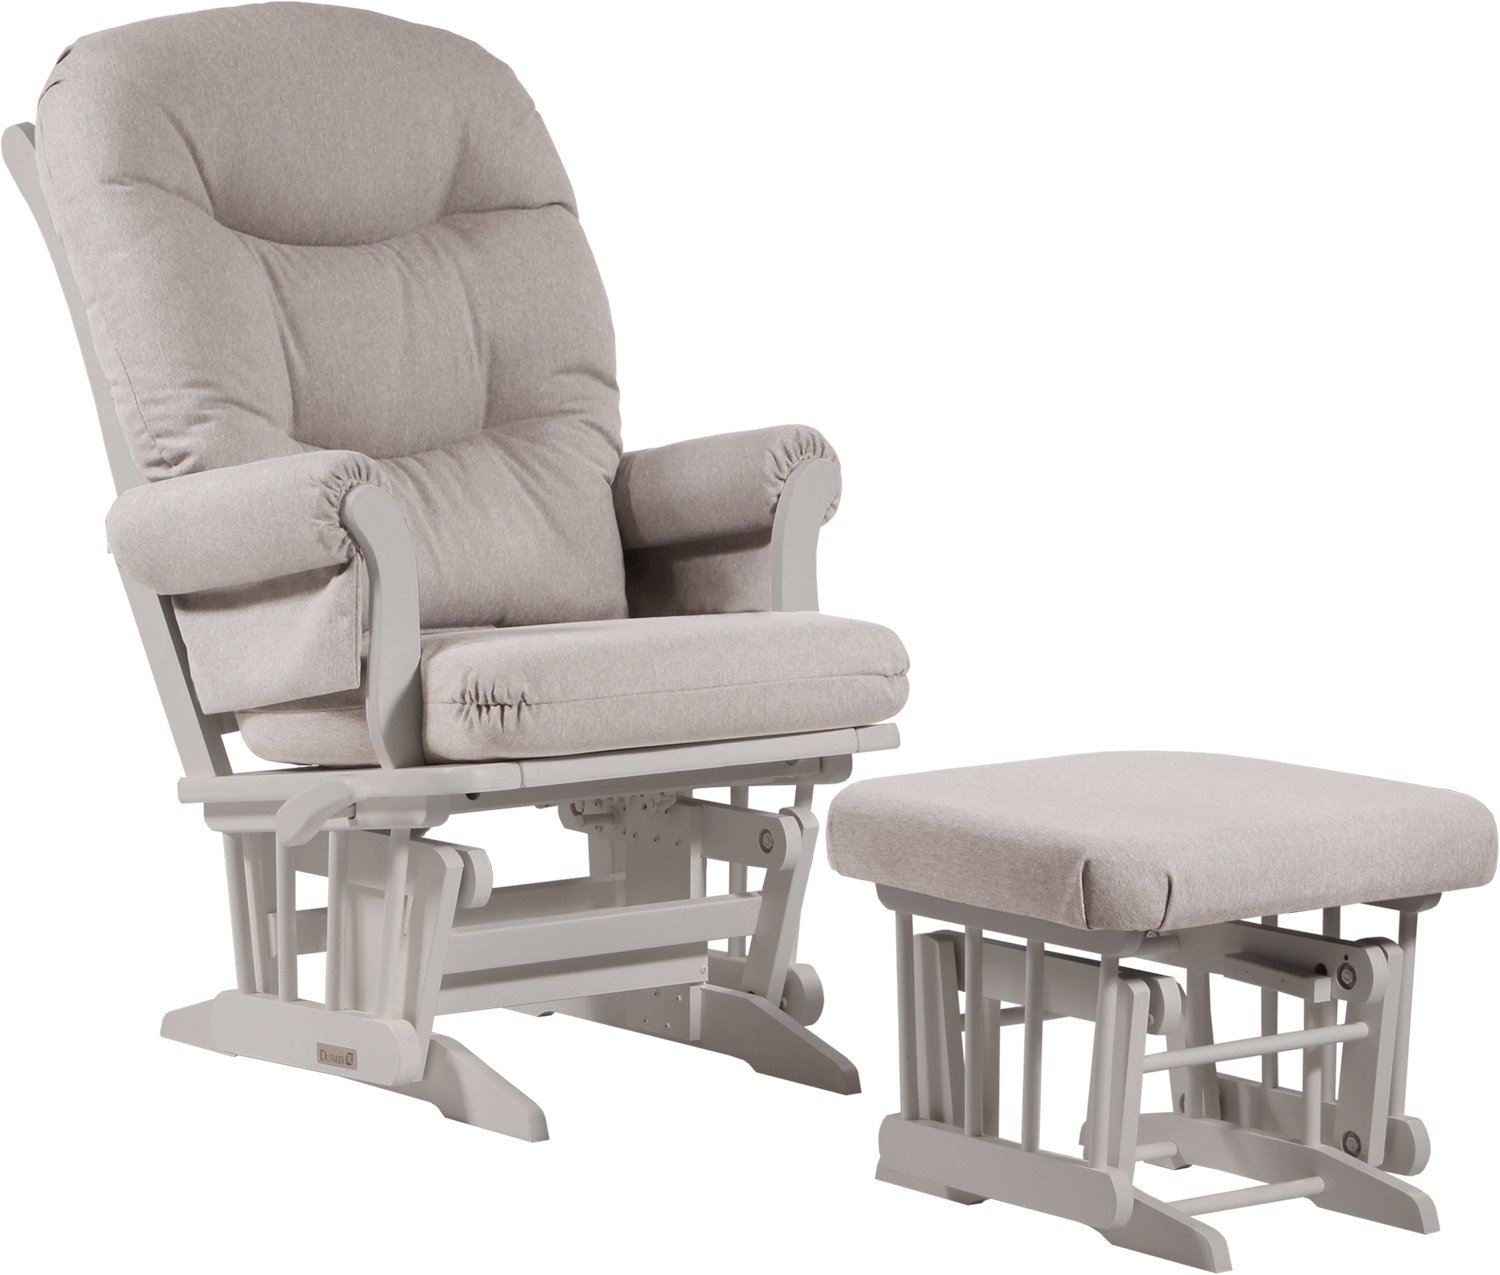 Superbe Amazon.com: Dutailier Sleigh Glider Multi Position Recline And Nursing  Ottoman Combo, White/Light Grey: Baby